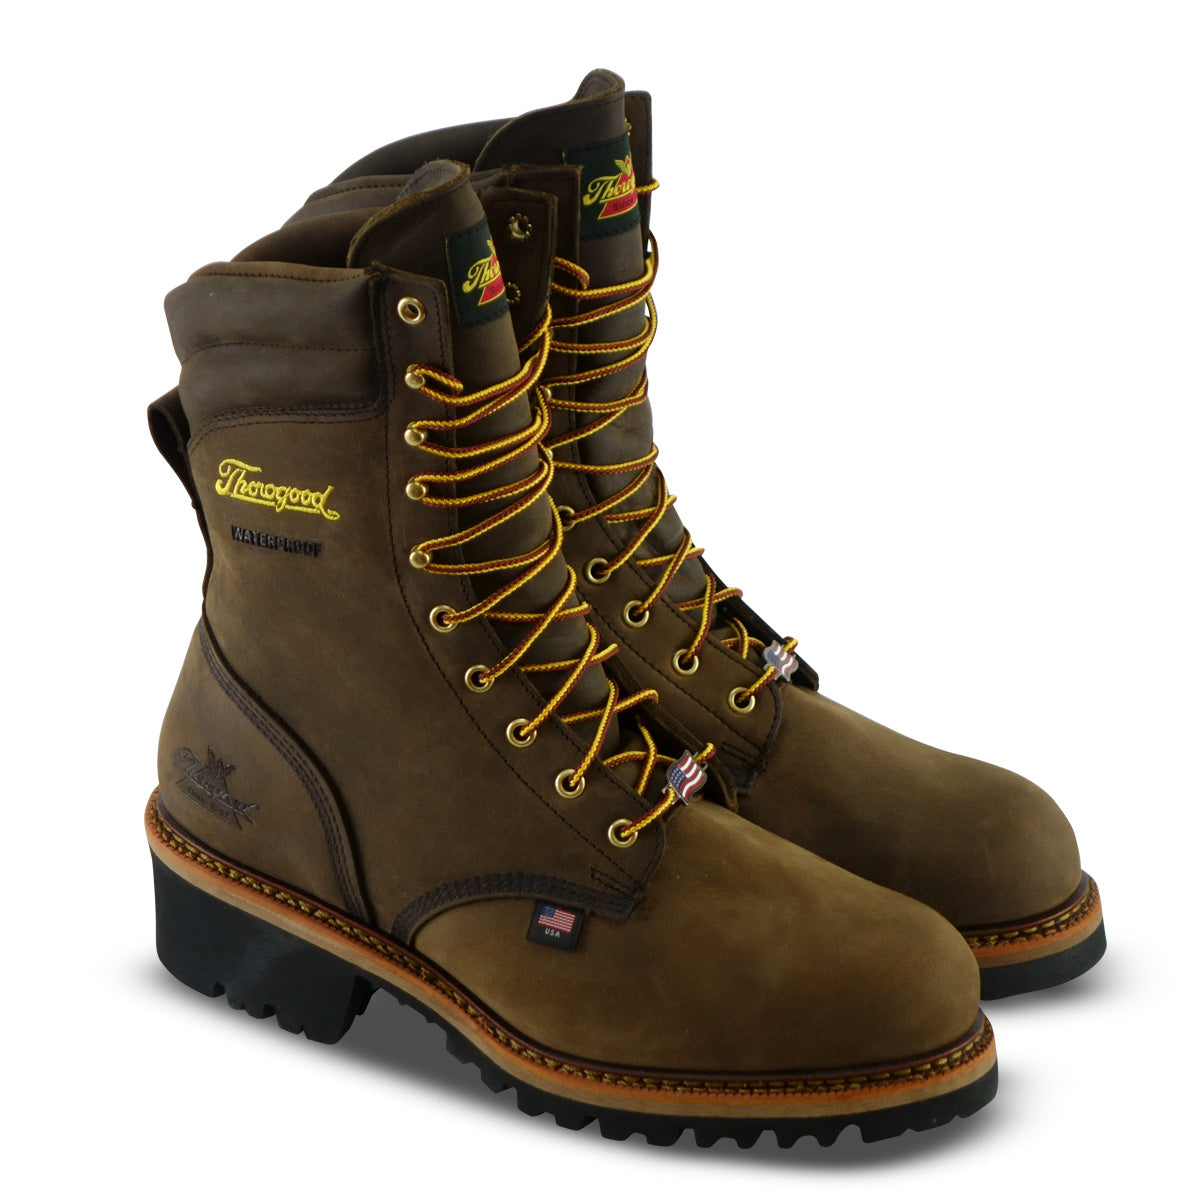 ee048394d5d Men's Work Boots | Cowboy Boots and Western Clothing | Painted ...